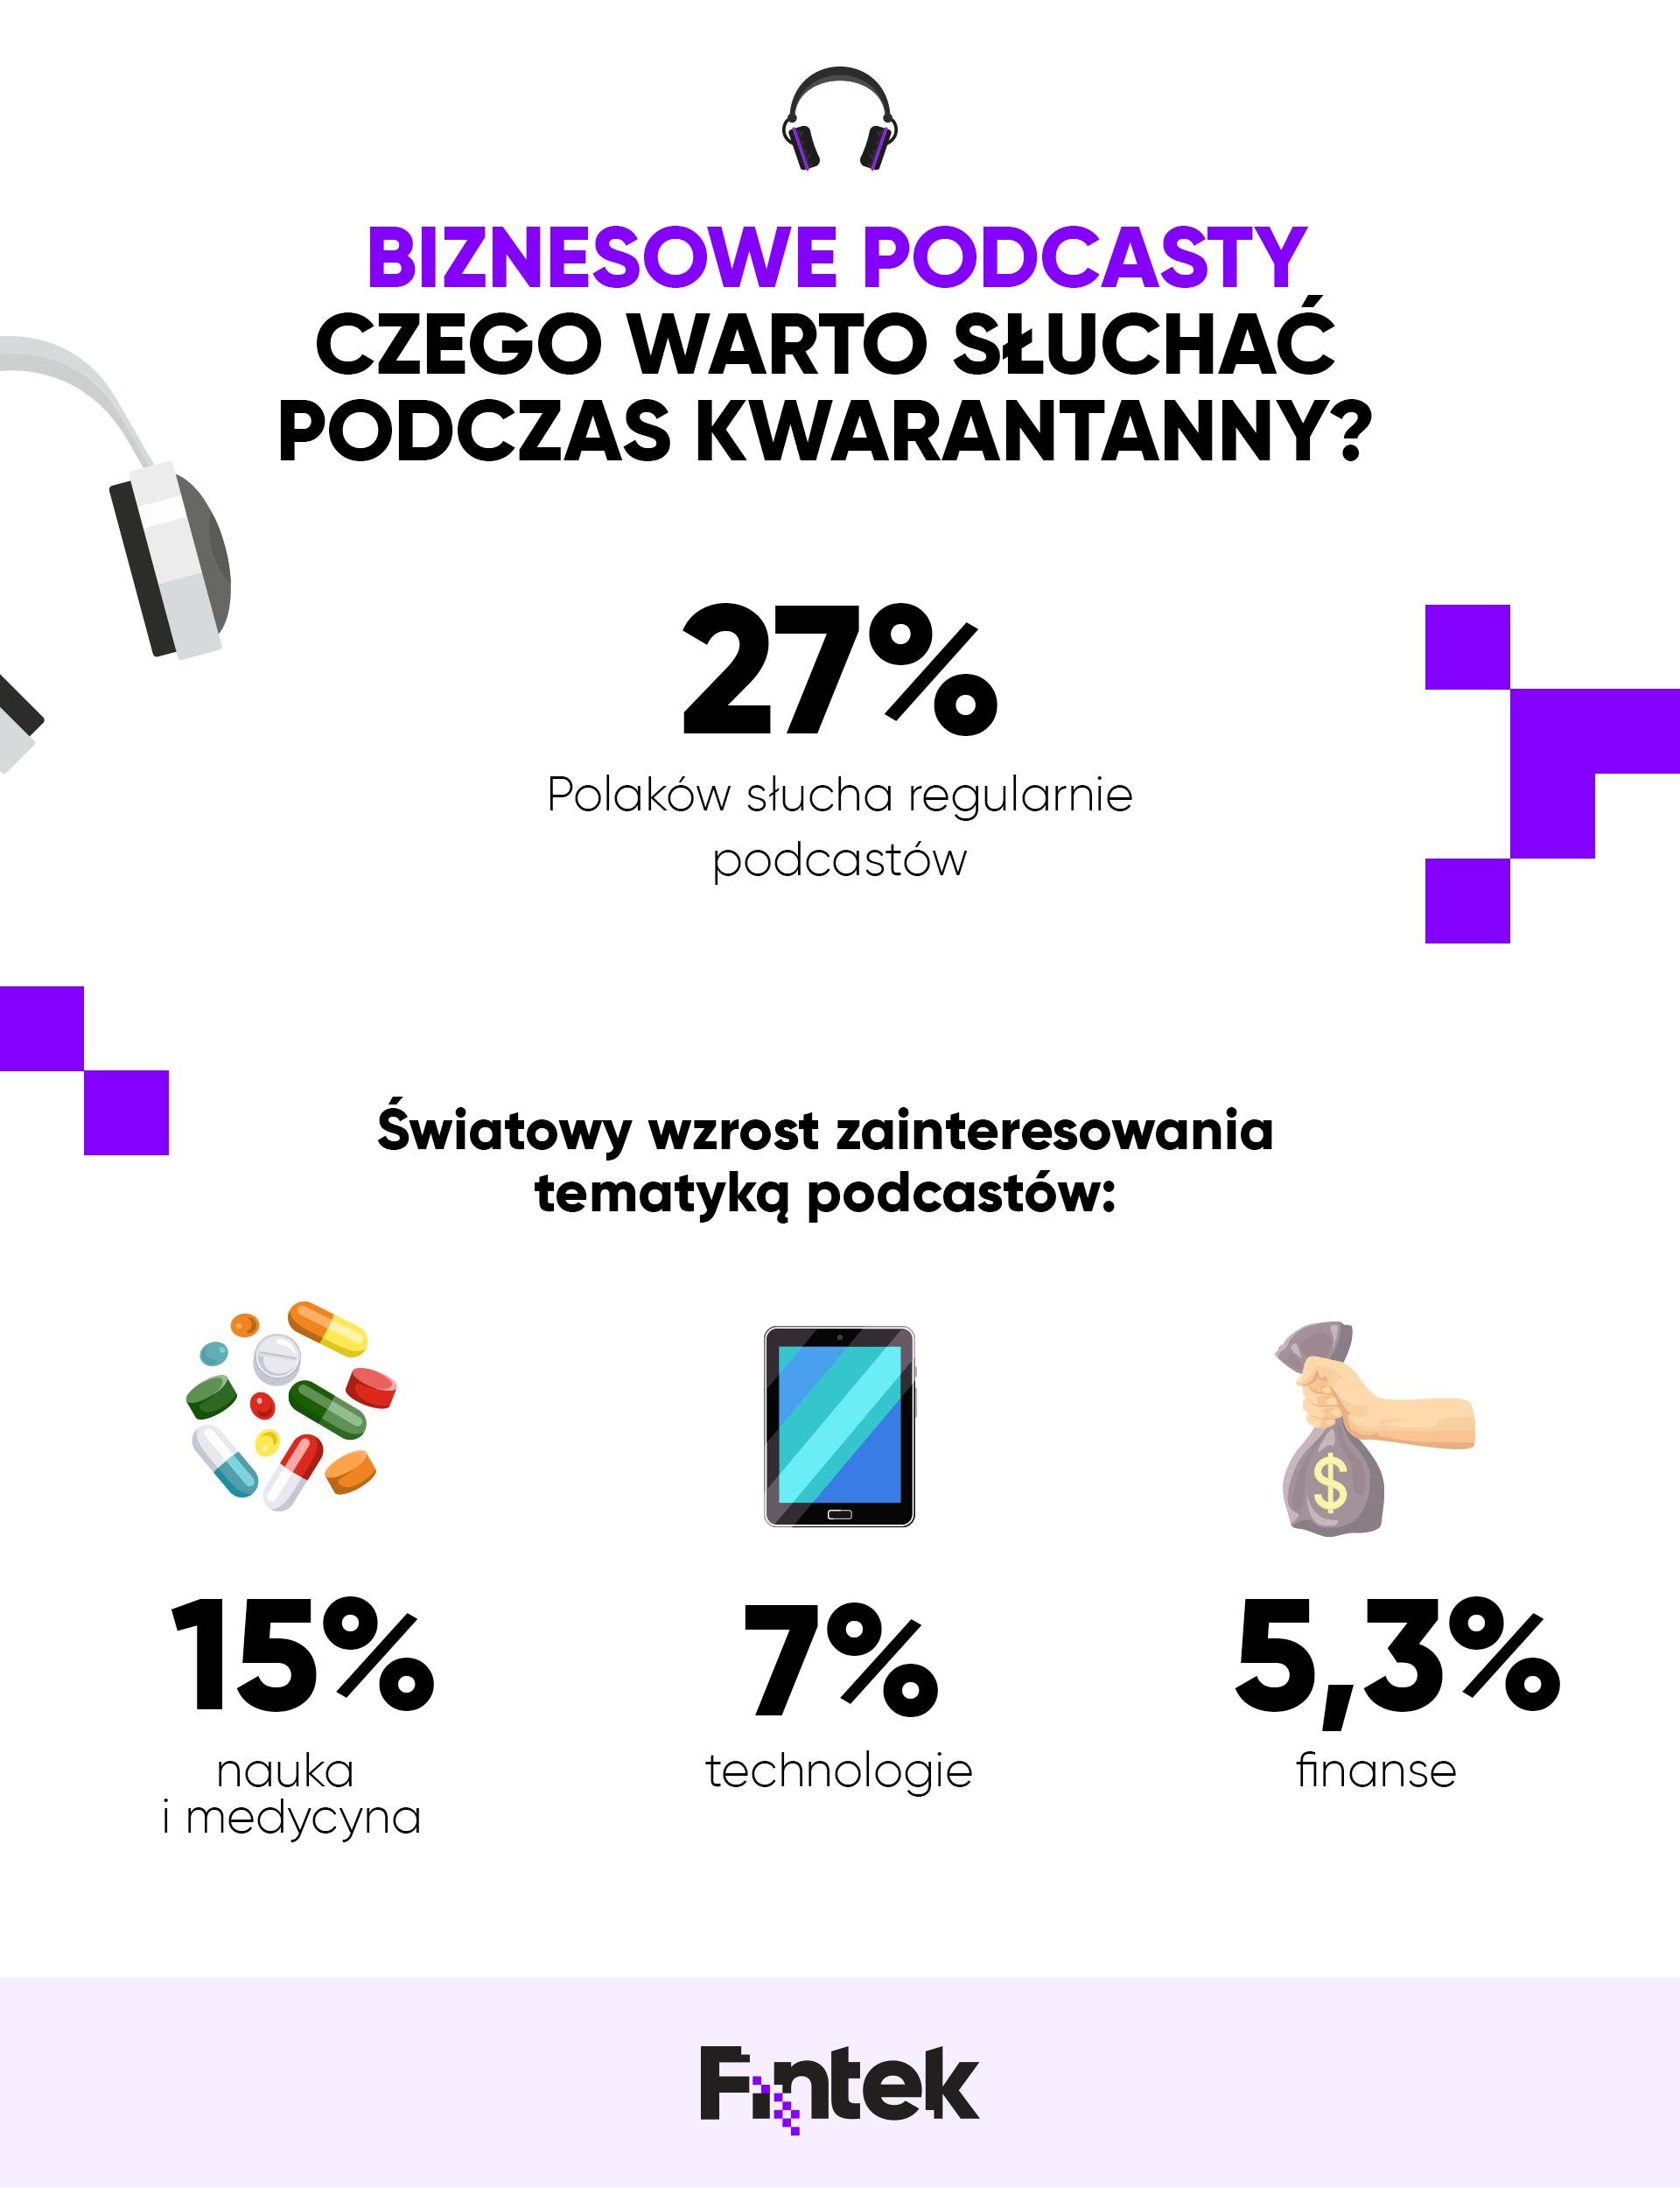 Podcasty Fintek - infografika